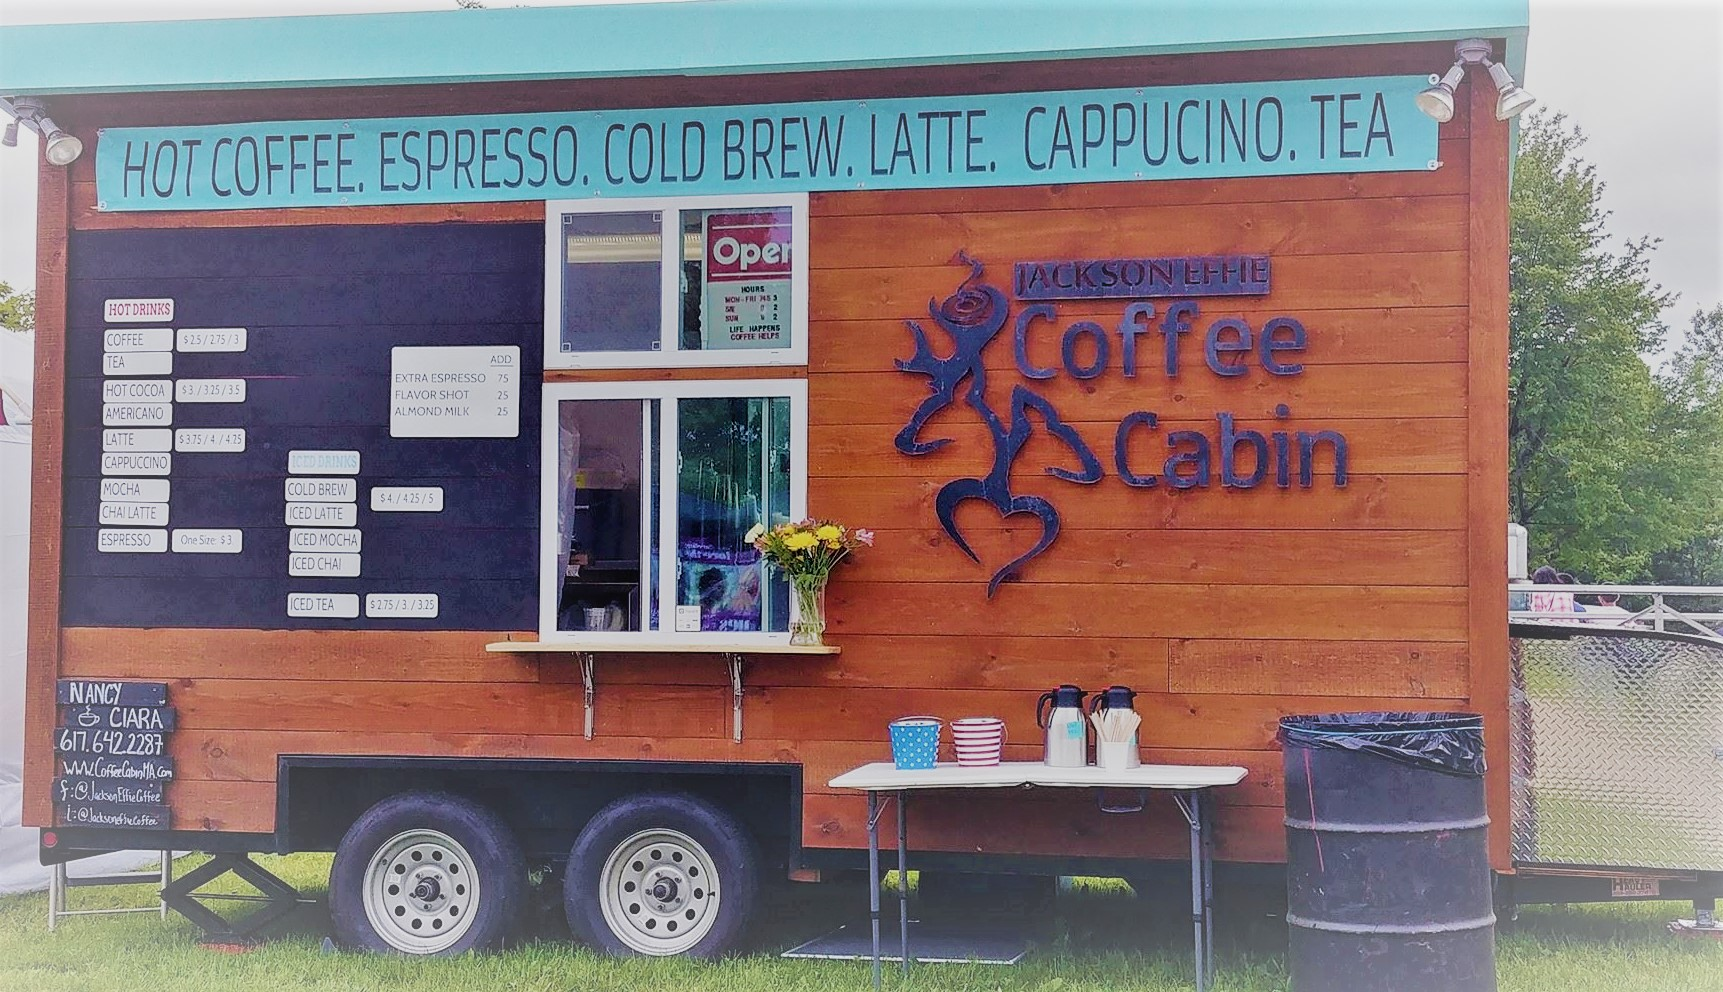 Jackson Effie Coffee Cabin